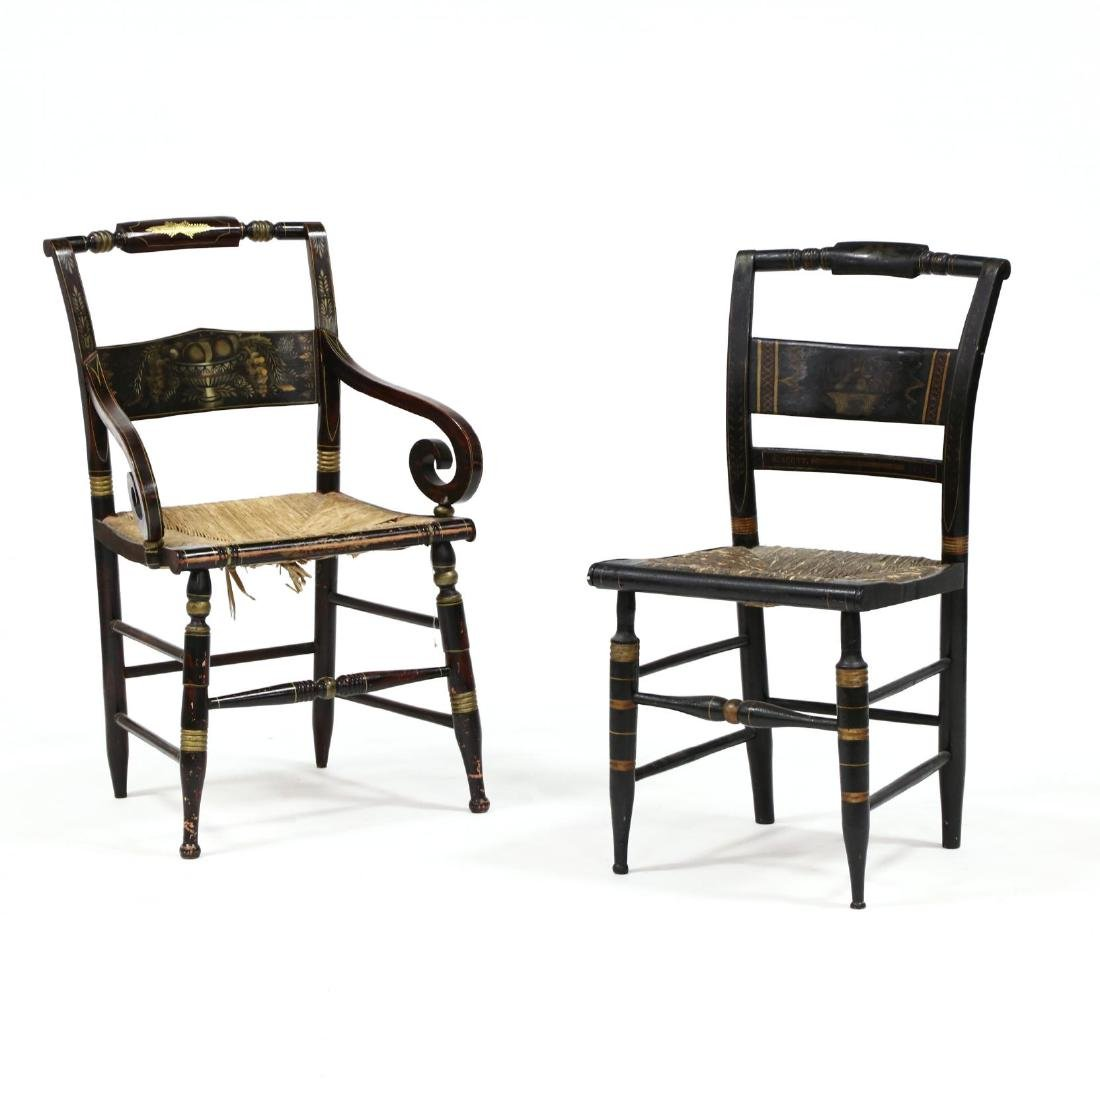 Two Antique Hitchcock Chairs